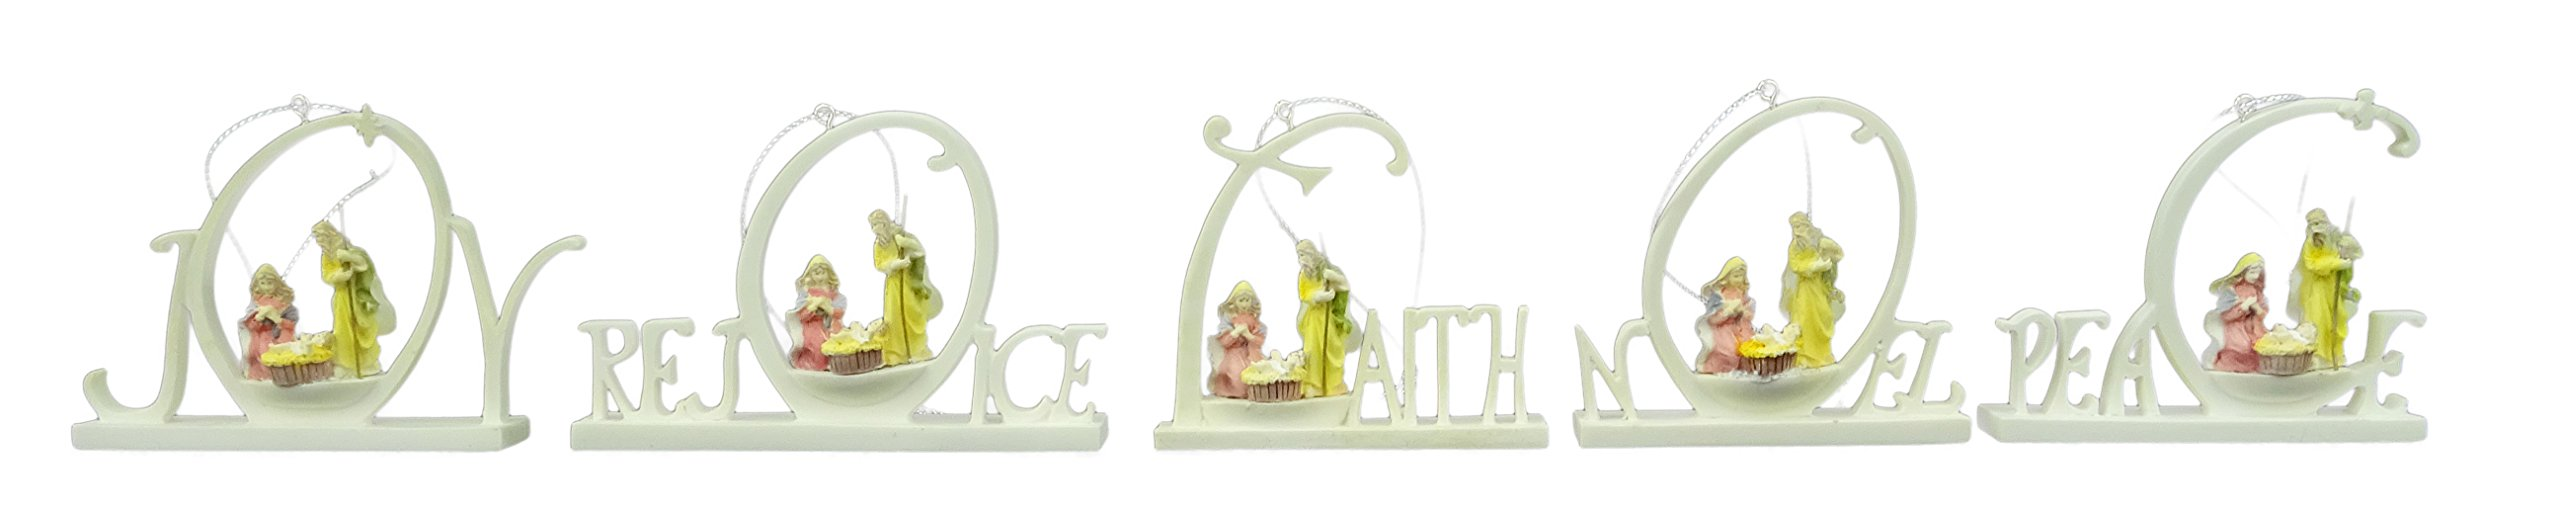 One Pack Of Five Assorted Nativity Tree Trims Featuring Words With Religious Connotations